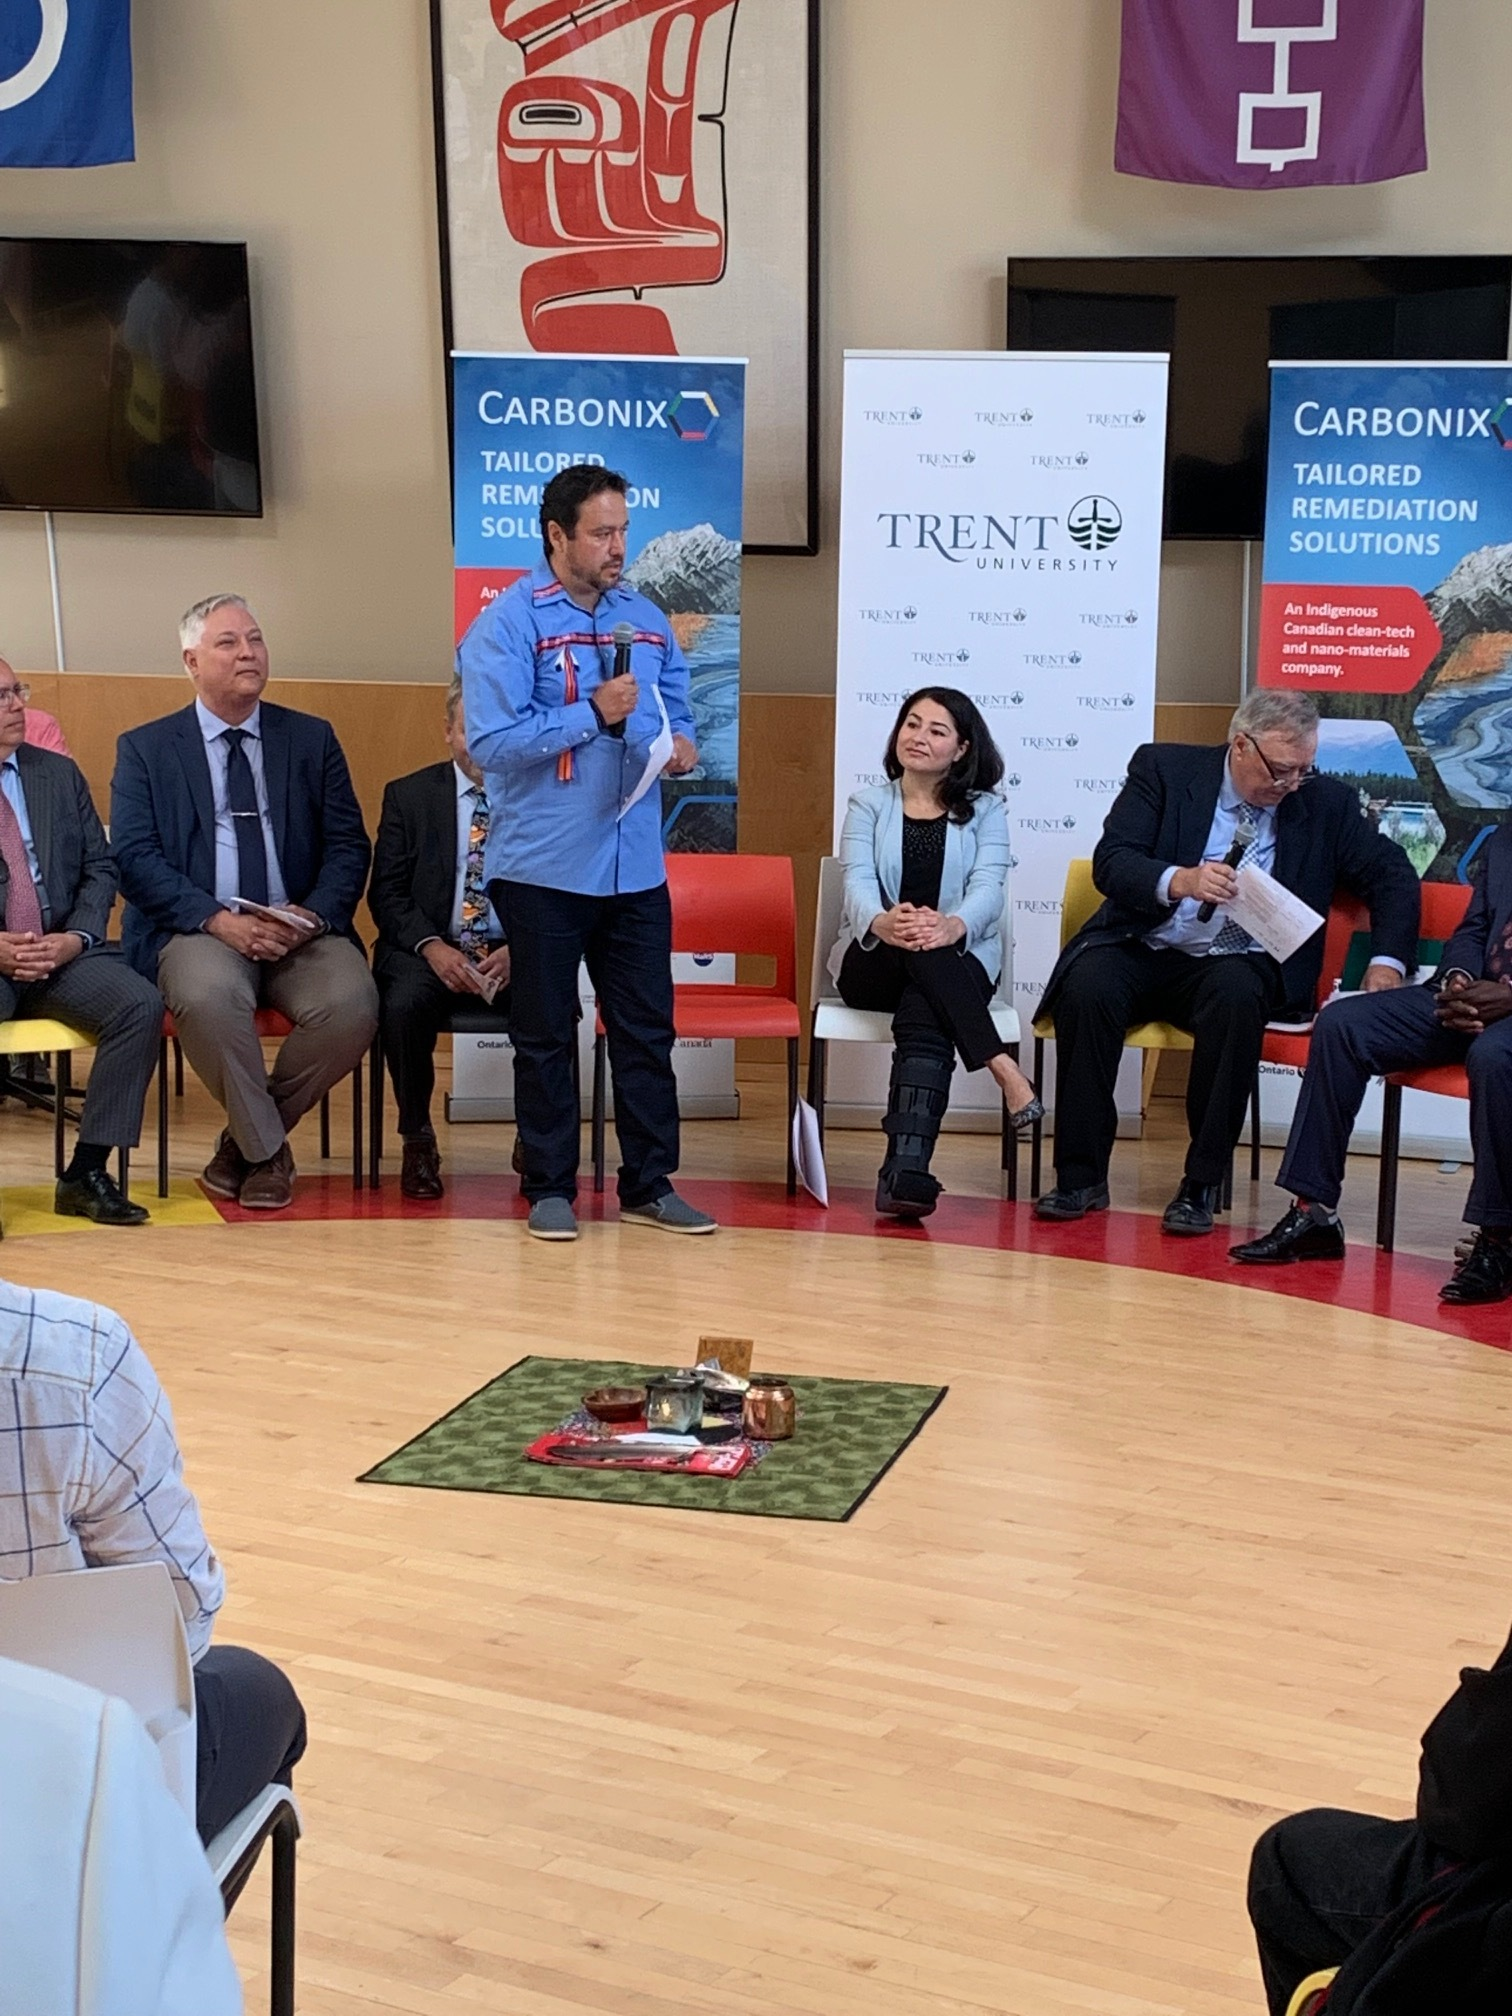 Carbonix Co-Founder Darren Harper speaking at announcement (Photo by Neil Morton, PTBOCanada)